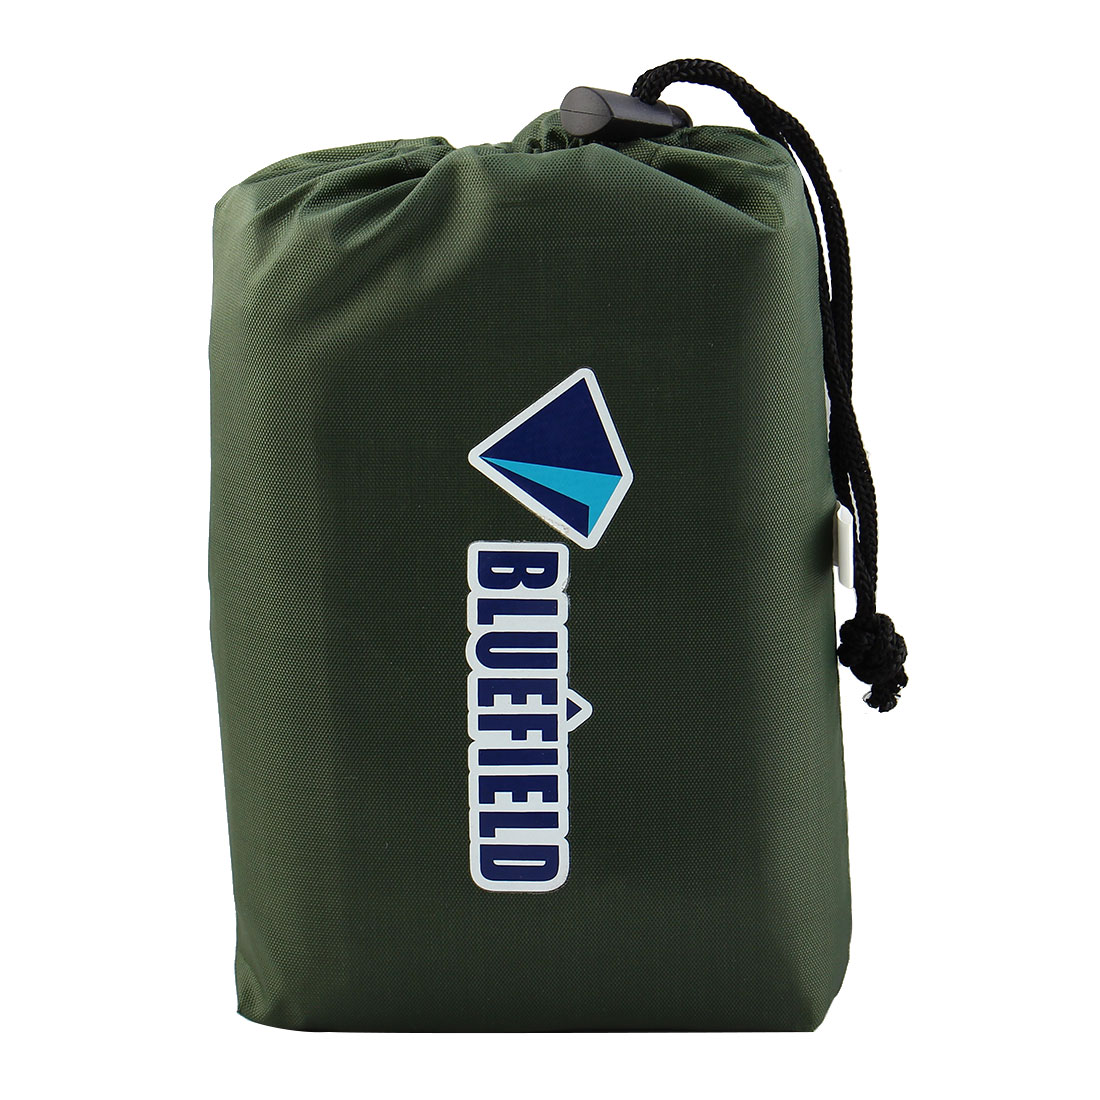 Bluefield Authorized Hiking Outdoor Water Resistant Picnic Blanket Foldable Camping Mat Pad Dark Green